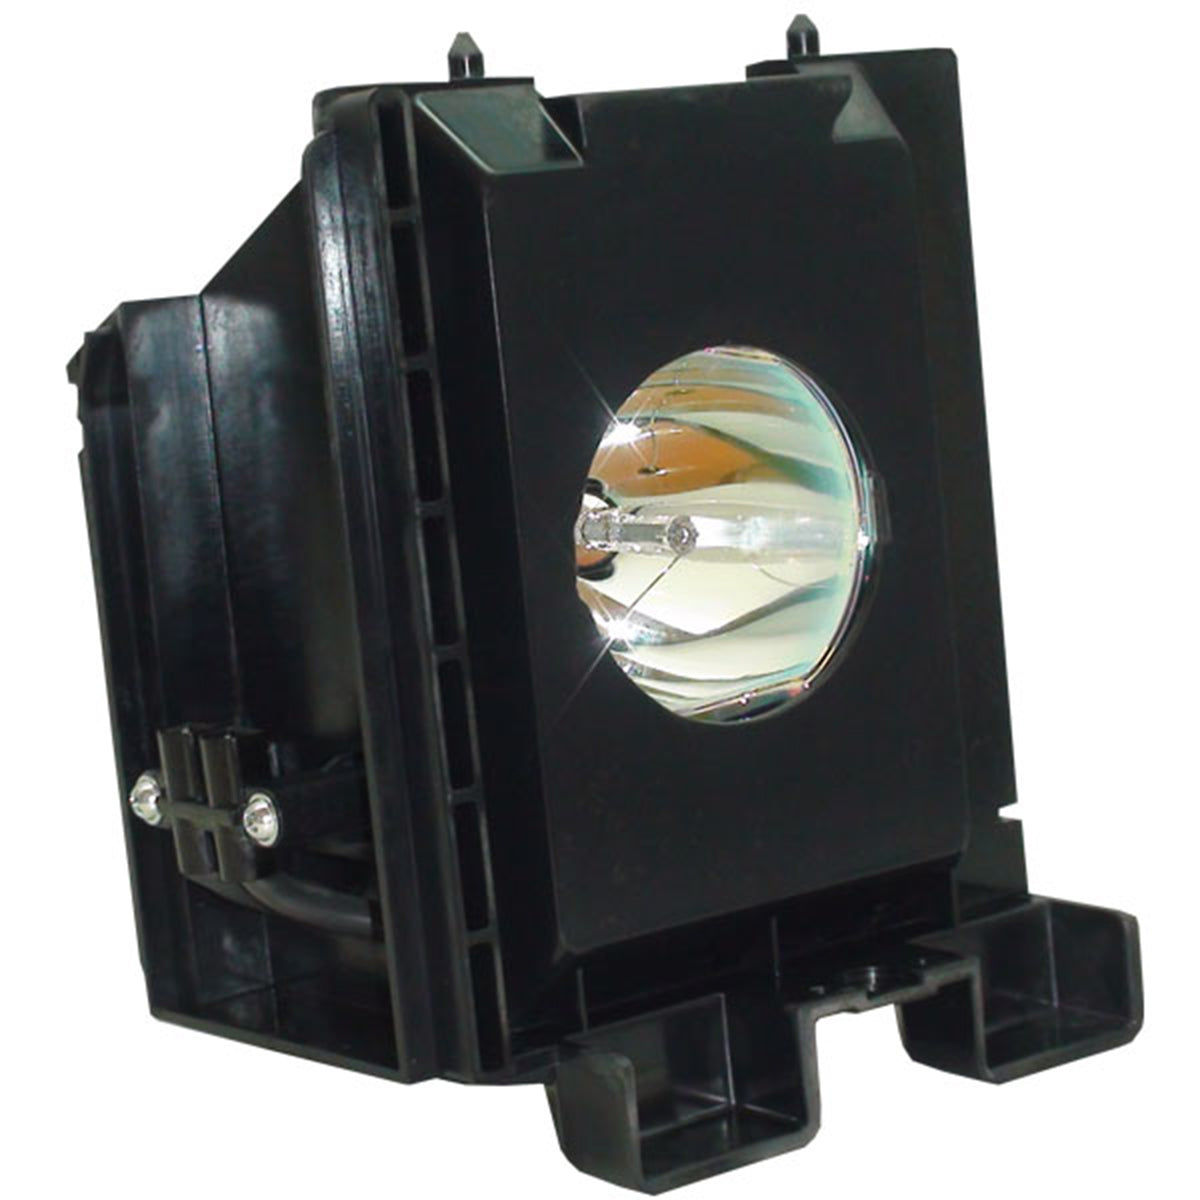 Samsung BP96-00837A TV Lamp Module